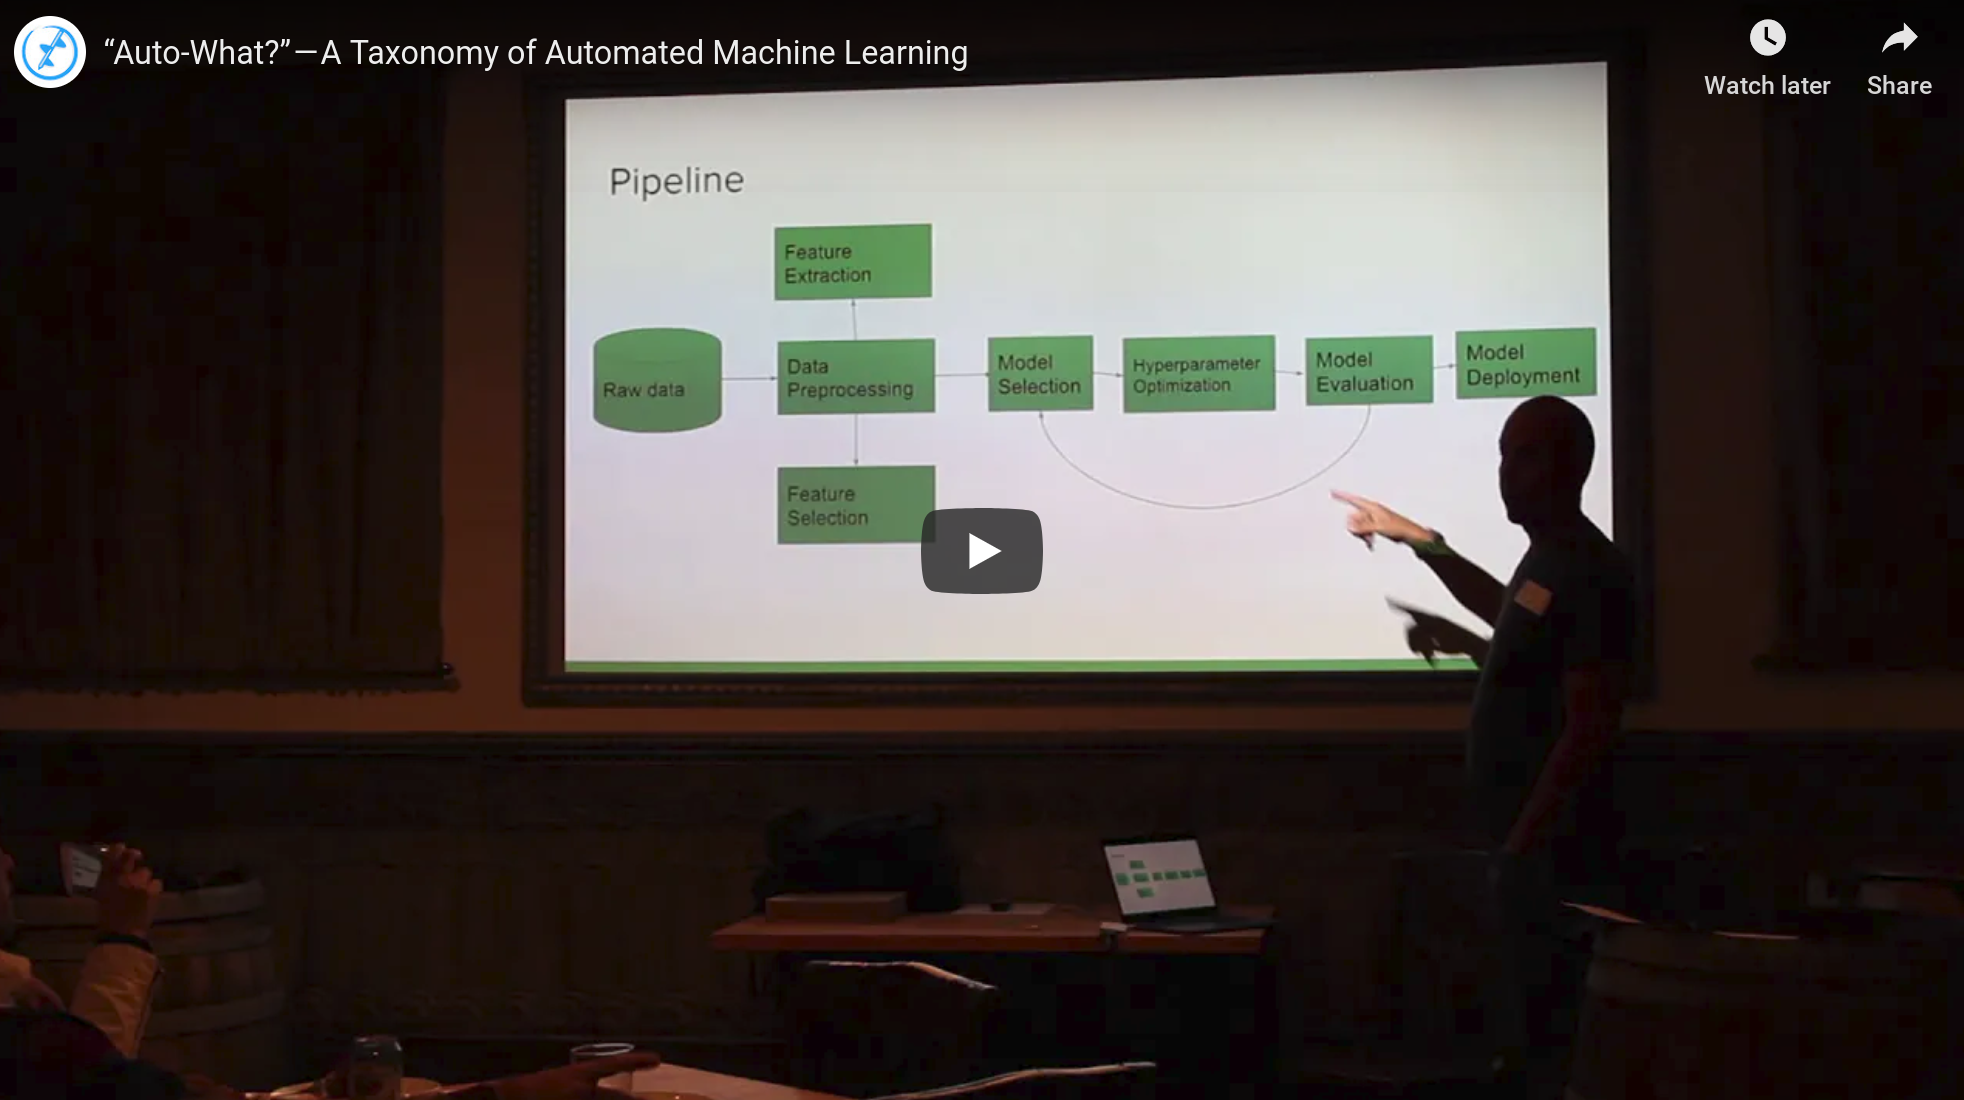 autowhat-a-taxonomy-of-automated-machine-learning.png